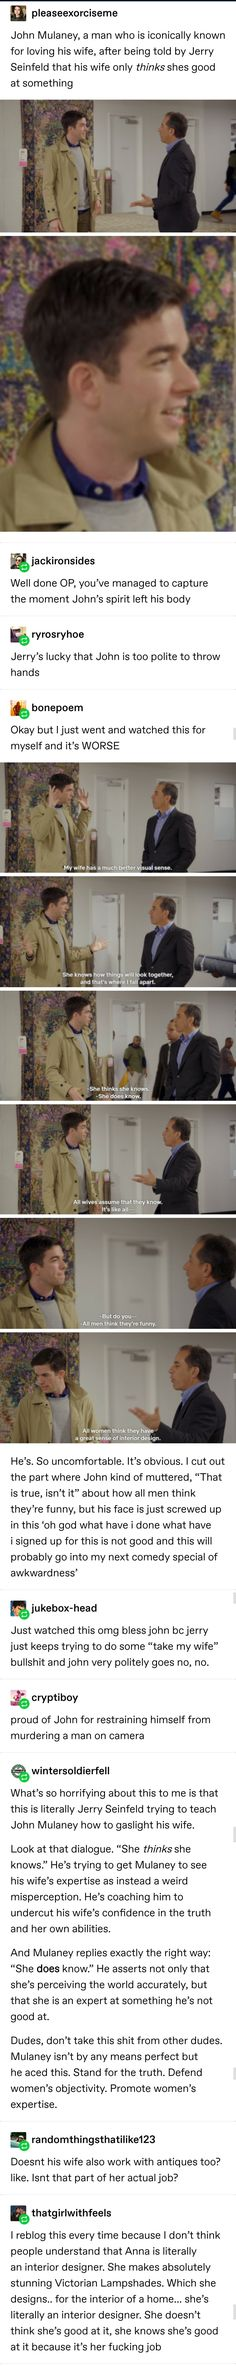 Jerry Seinfeld trying to teach John Mulaney to undercut his wife, but John doesn't have time for that sexist bull. Informations About Jerry Seinfeld trying to teach John Mulaney to undercut his wife, Jerry Seinfeld, John Mulaney, Faith In Humanity Restored, Street Smart, Stress, My Tumblr, Humor, Social Issues, Comedians